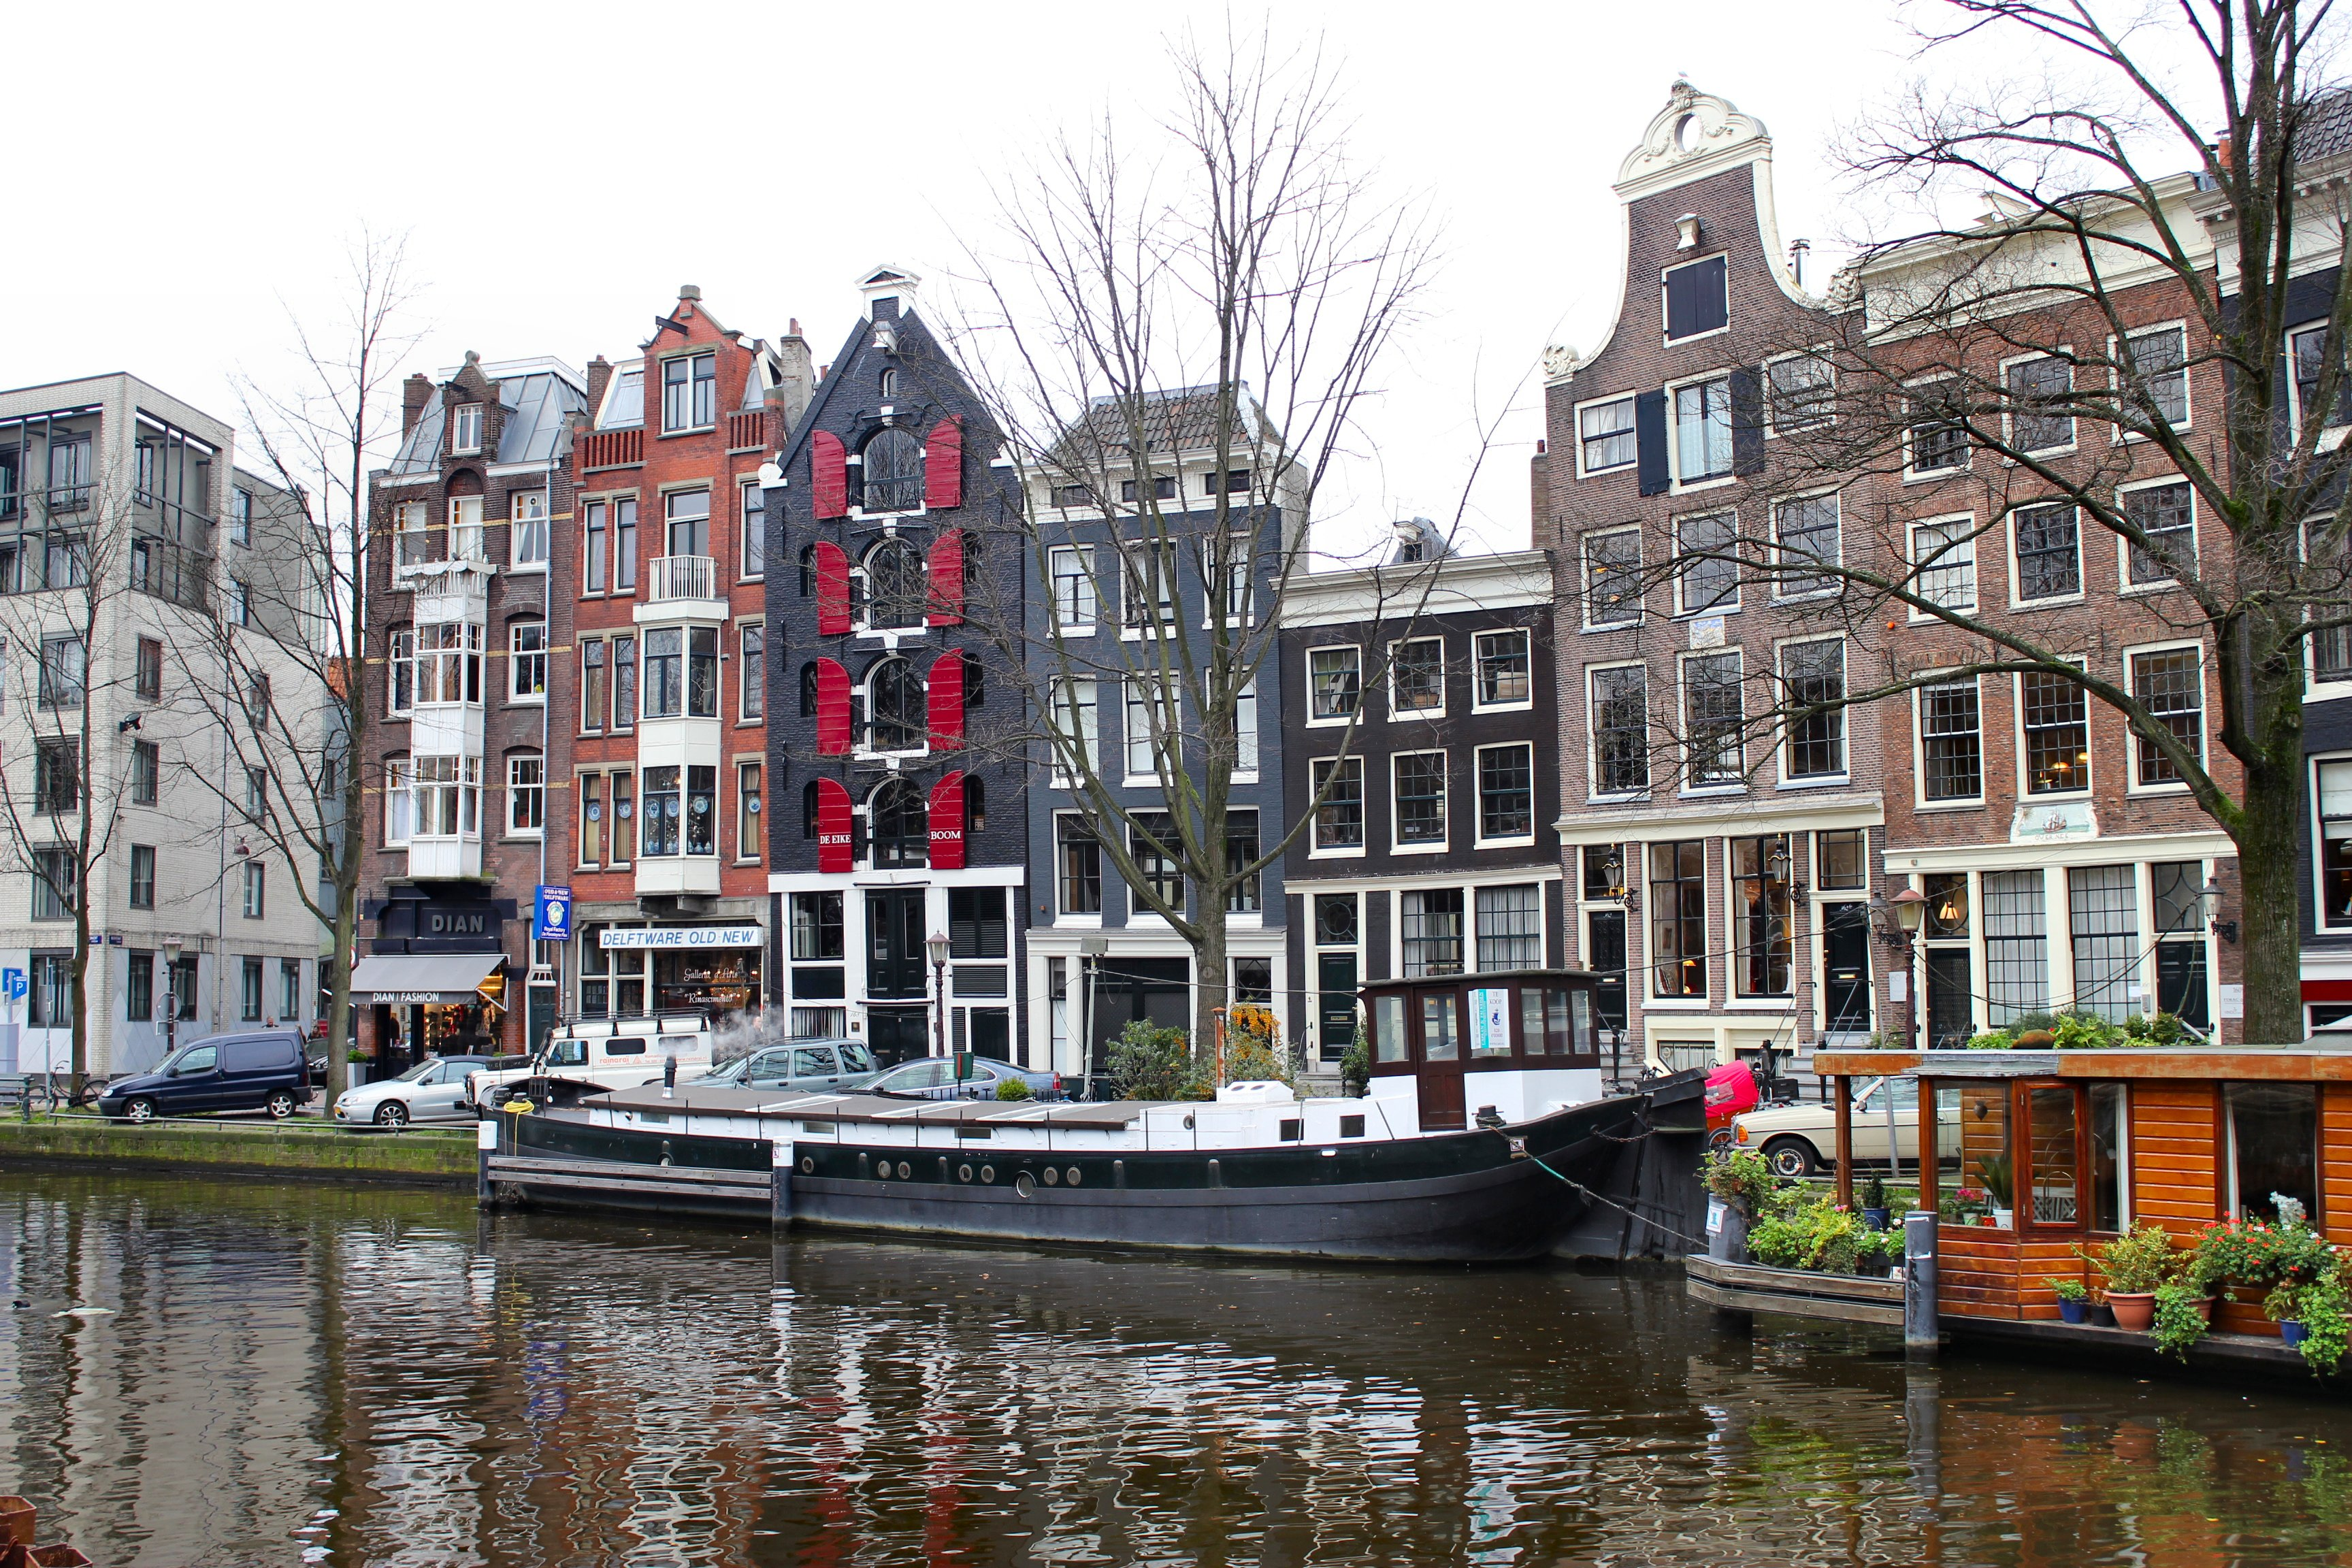 vacation photos part 2 amsterdam let s just say it was